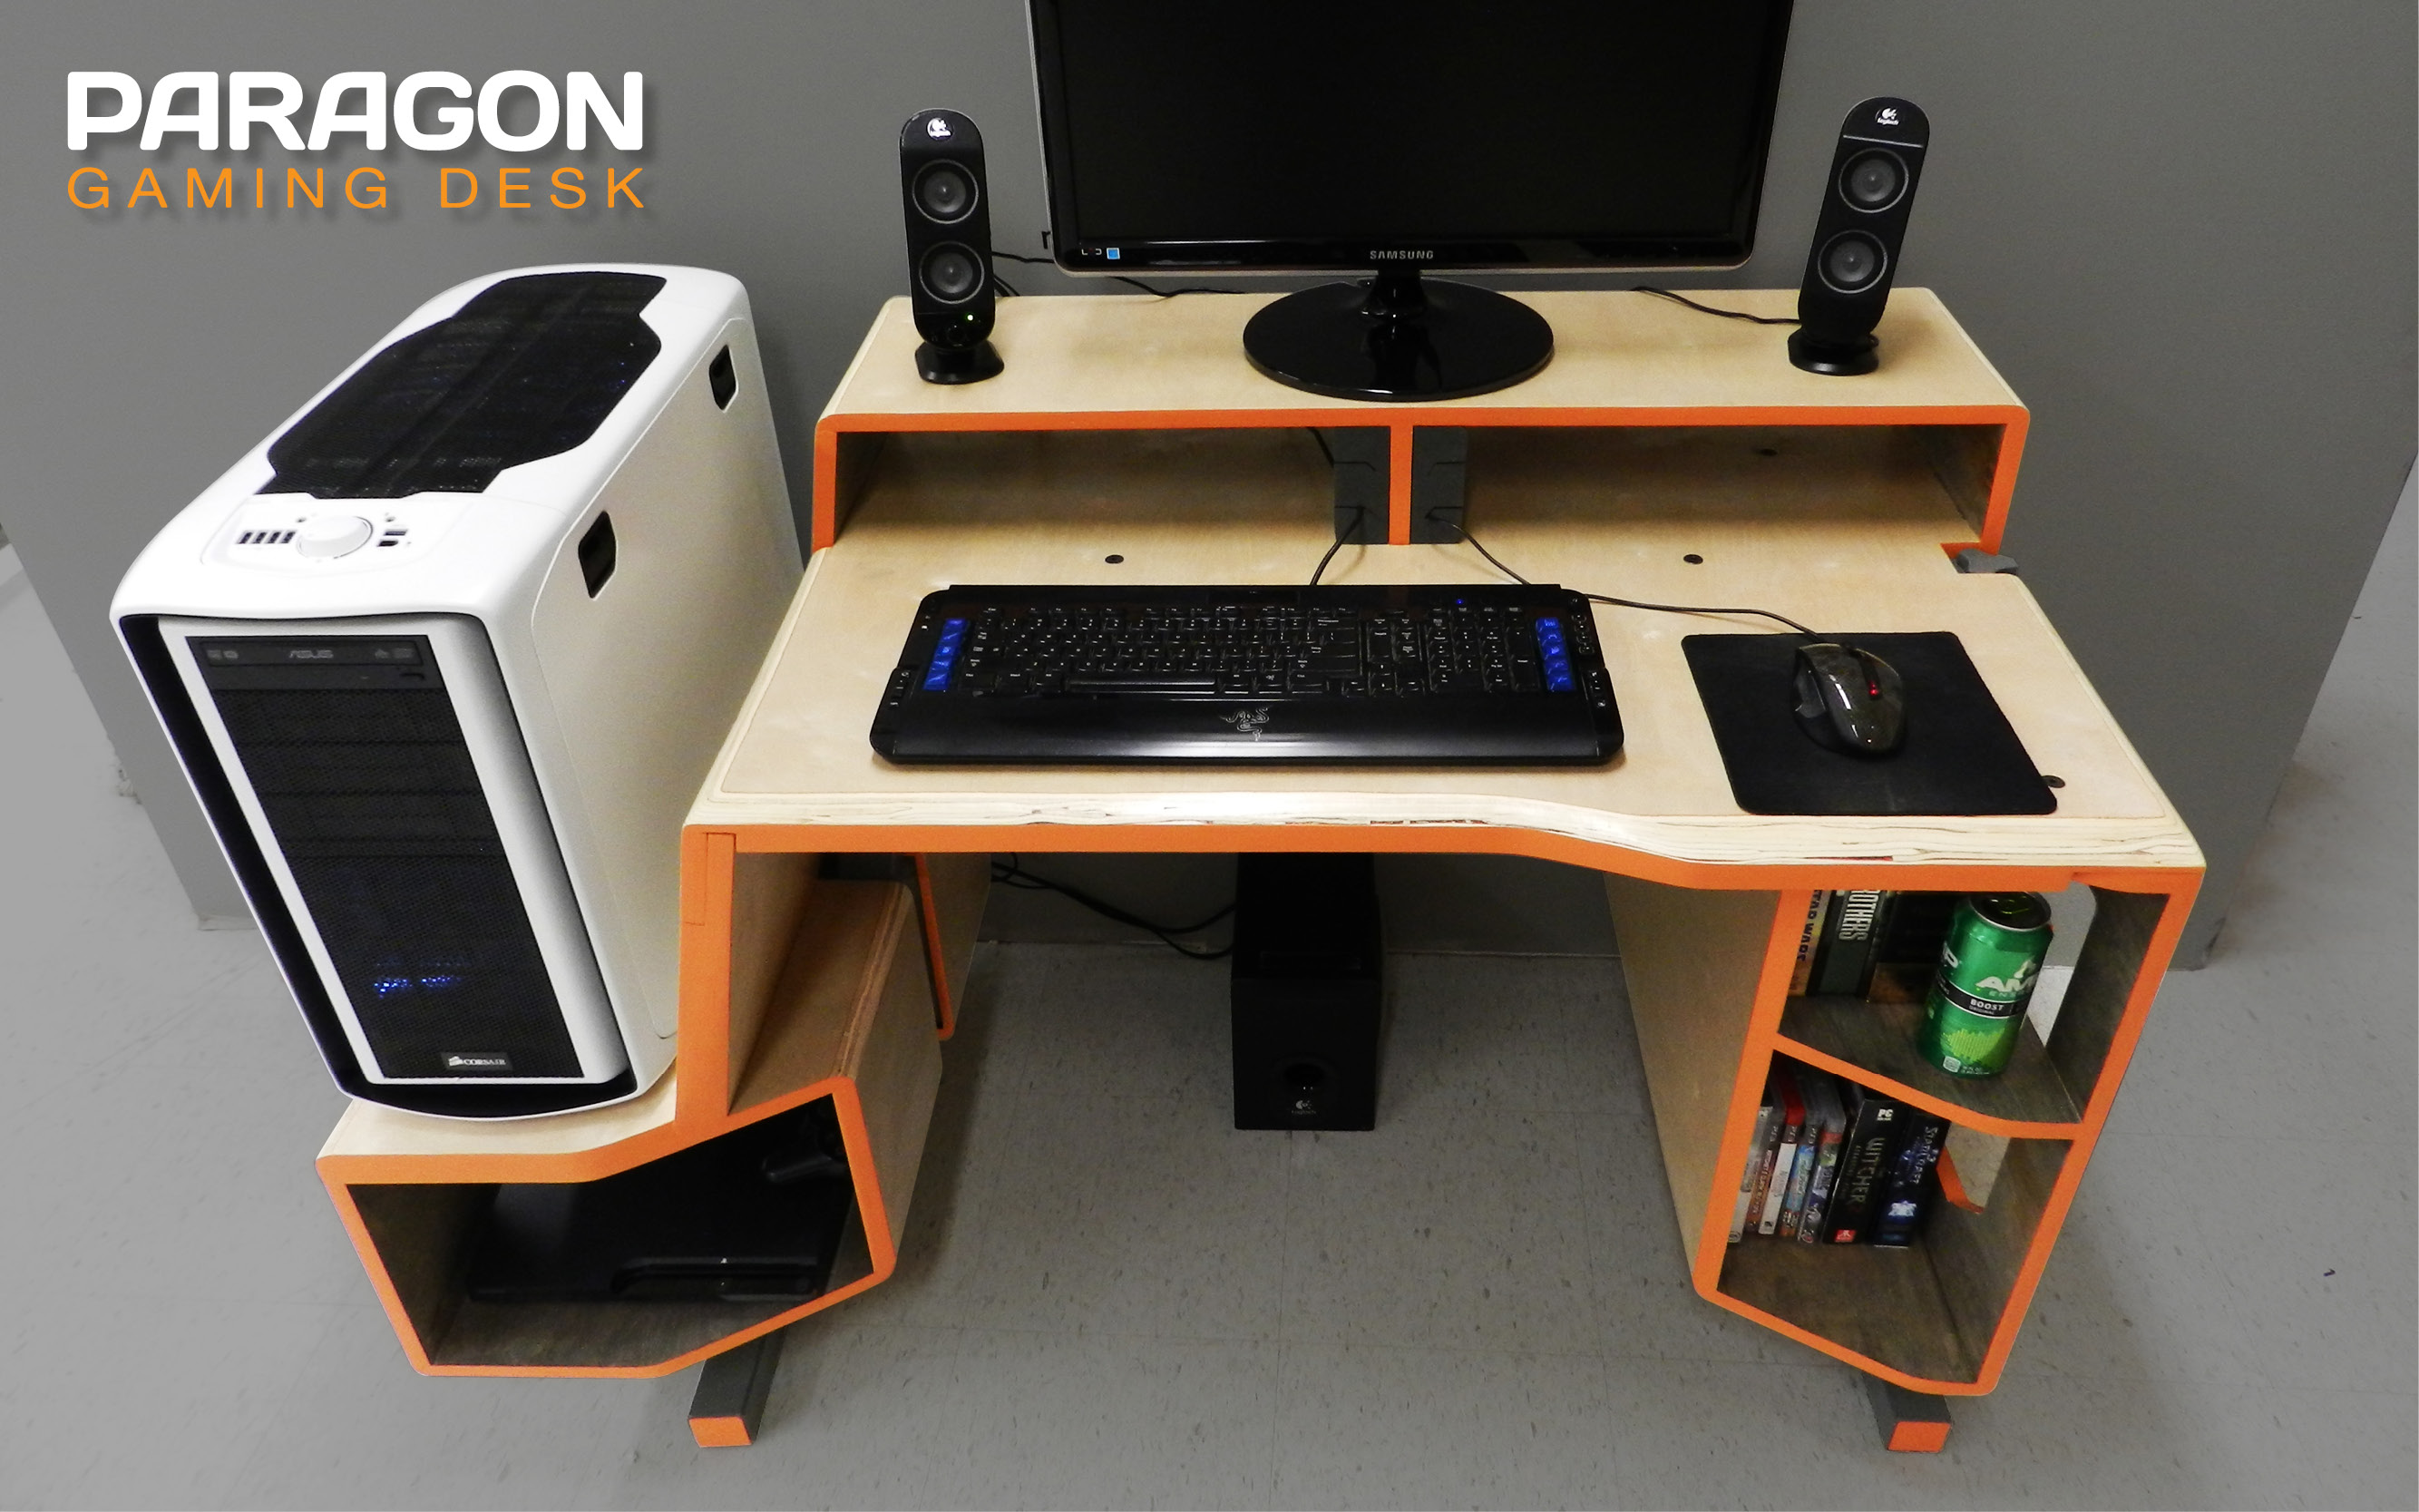 PARAGON Gaming Desk by Tom Balko at Coroflot.com